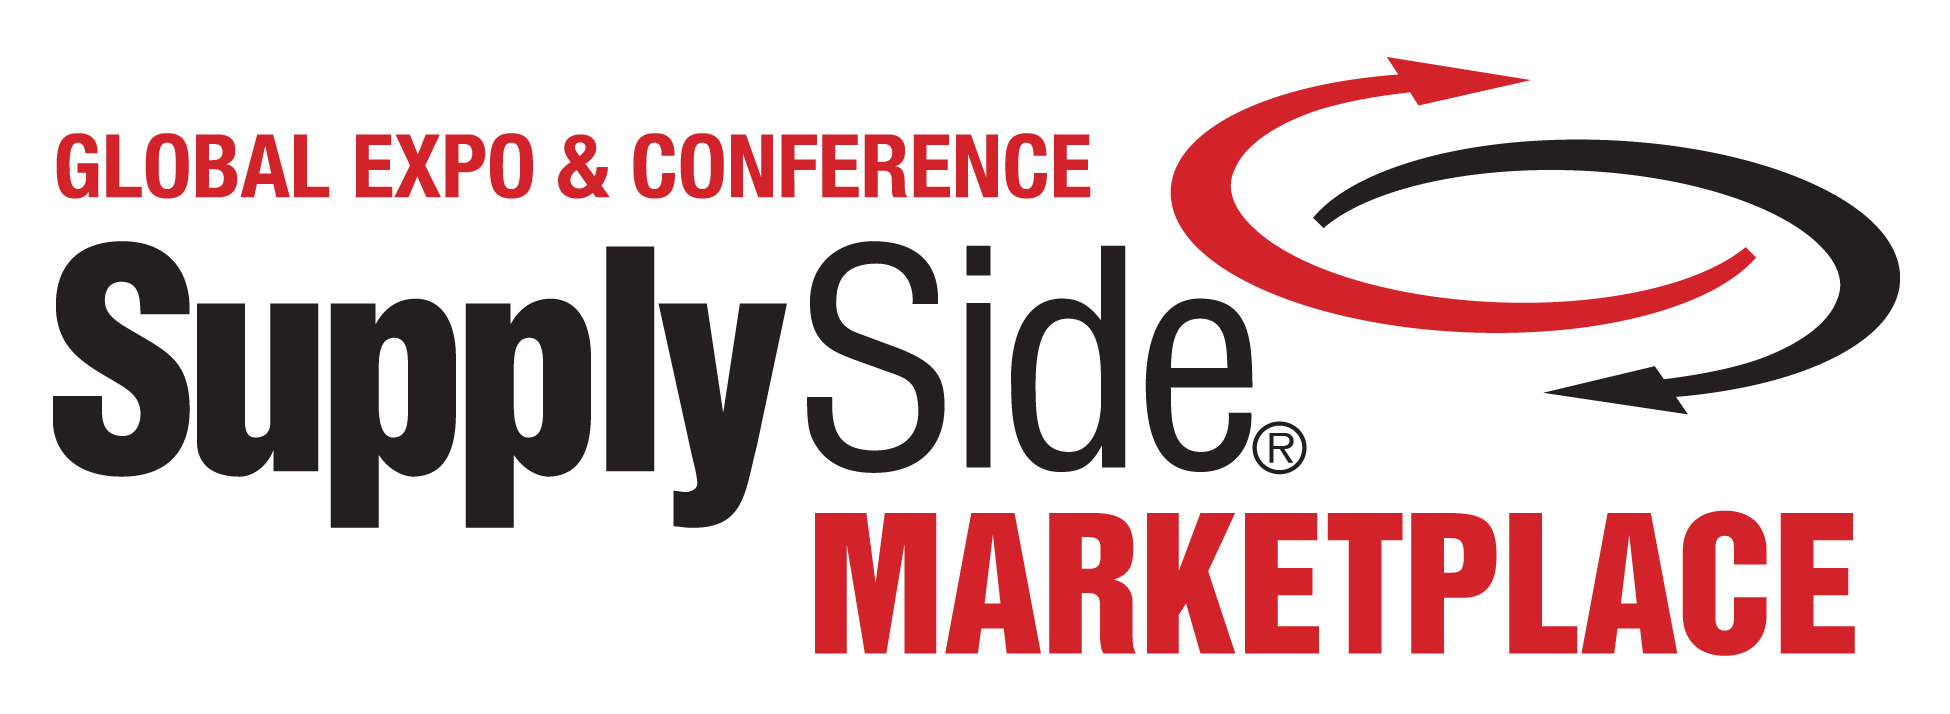 SupplySide Marketplace New York, NY 2013